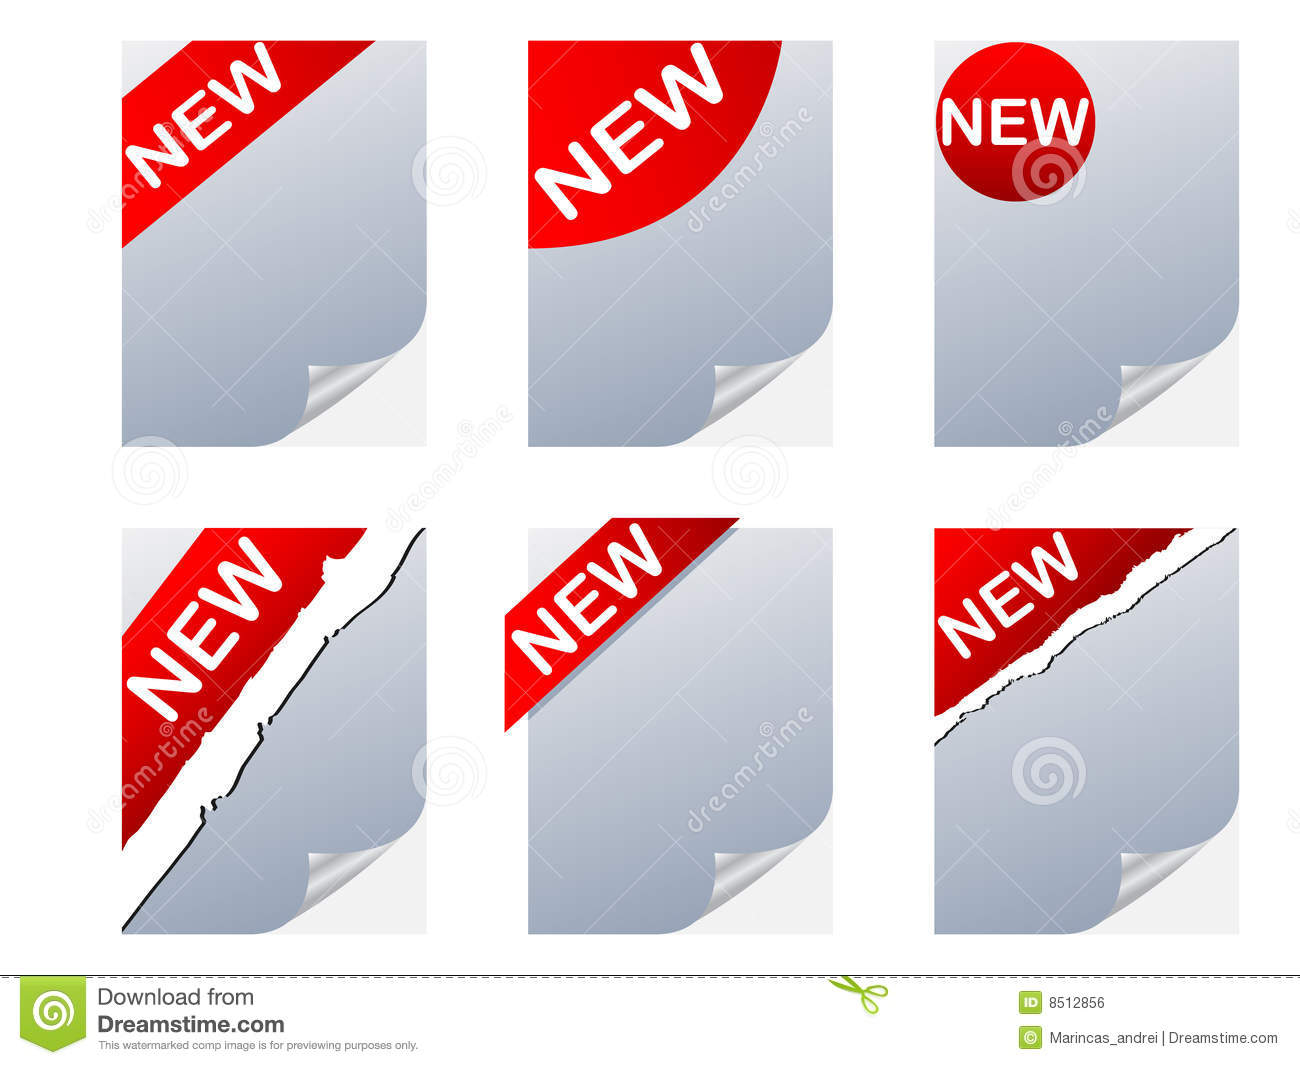 NEW Sign Royalty Free Stock Image - Image: 8512856